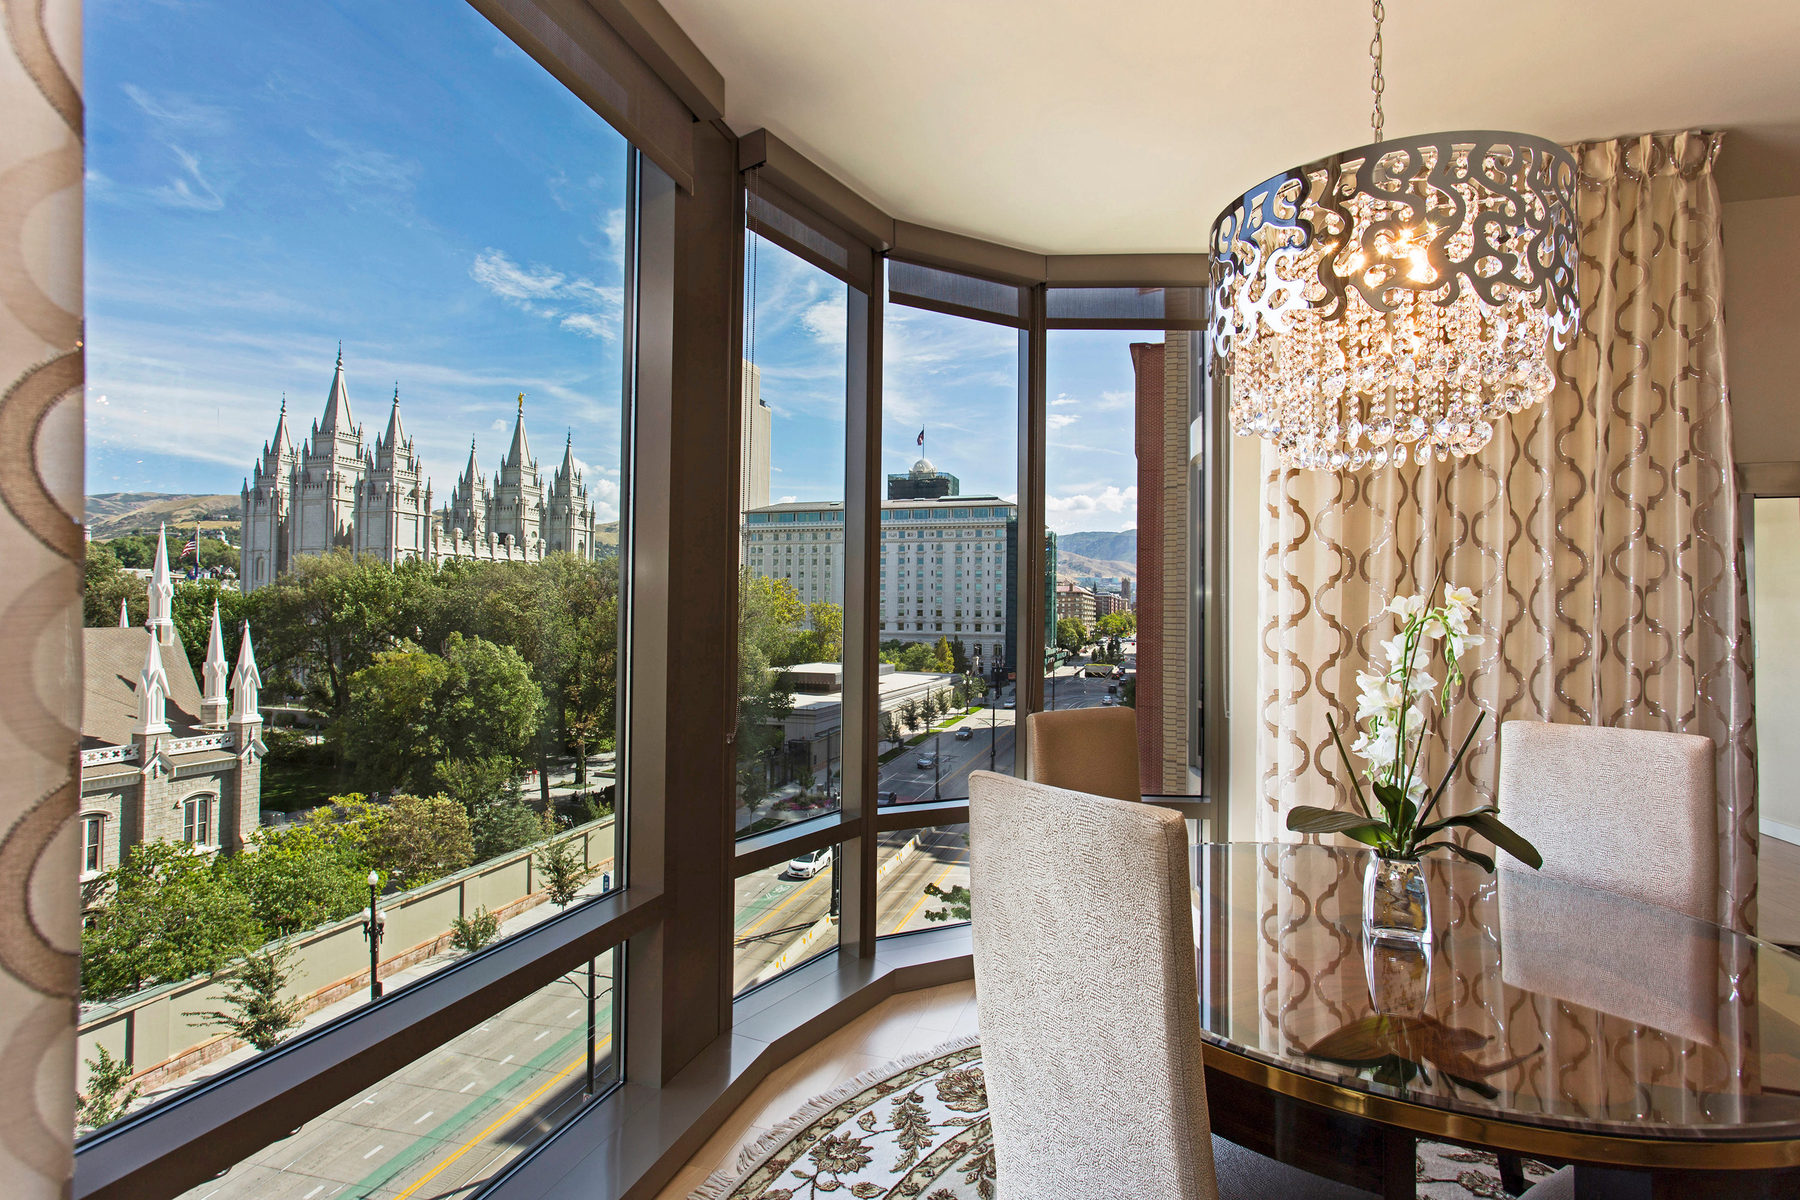 Кооперативная квартира для того Продажа на Captivating Views and Exquisite Design and Interior 99 S West Temple St #606 Salt Lake City, Юта 84101 Соединенные Штаты